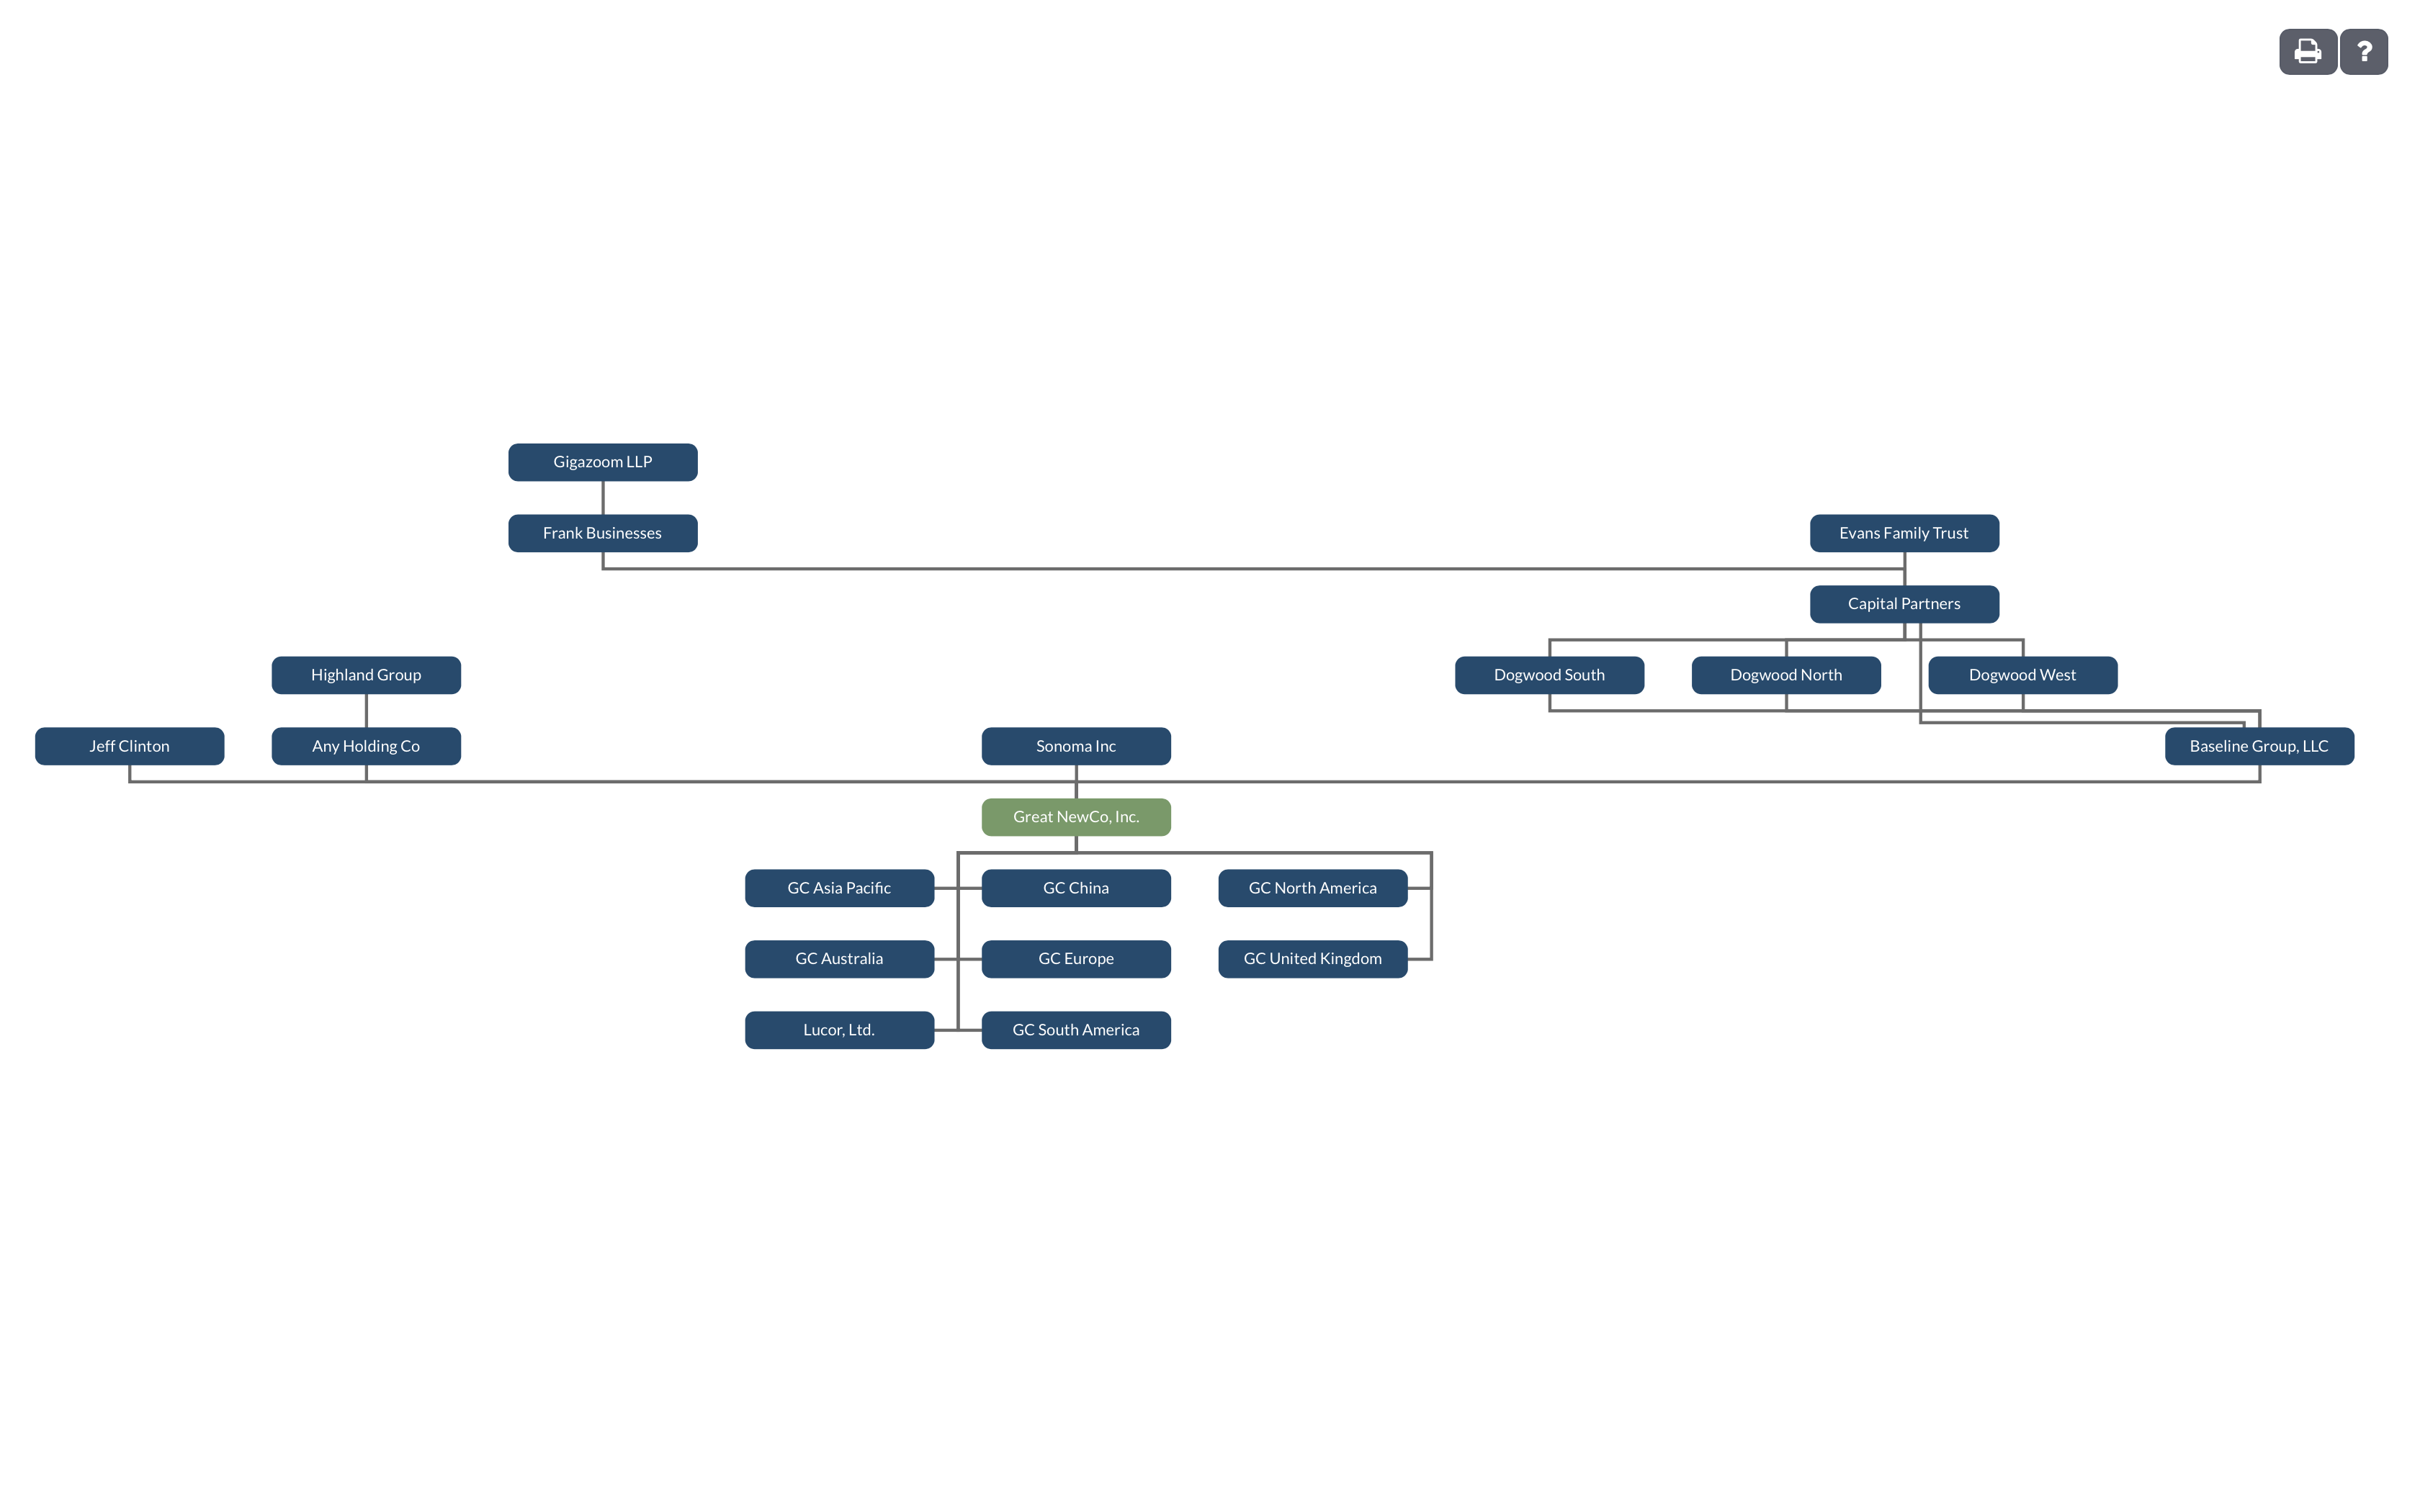 Legal Entity Org Chart